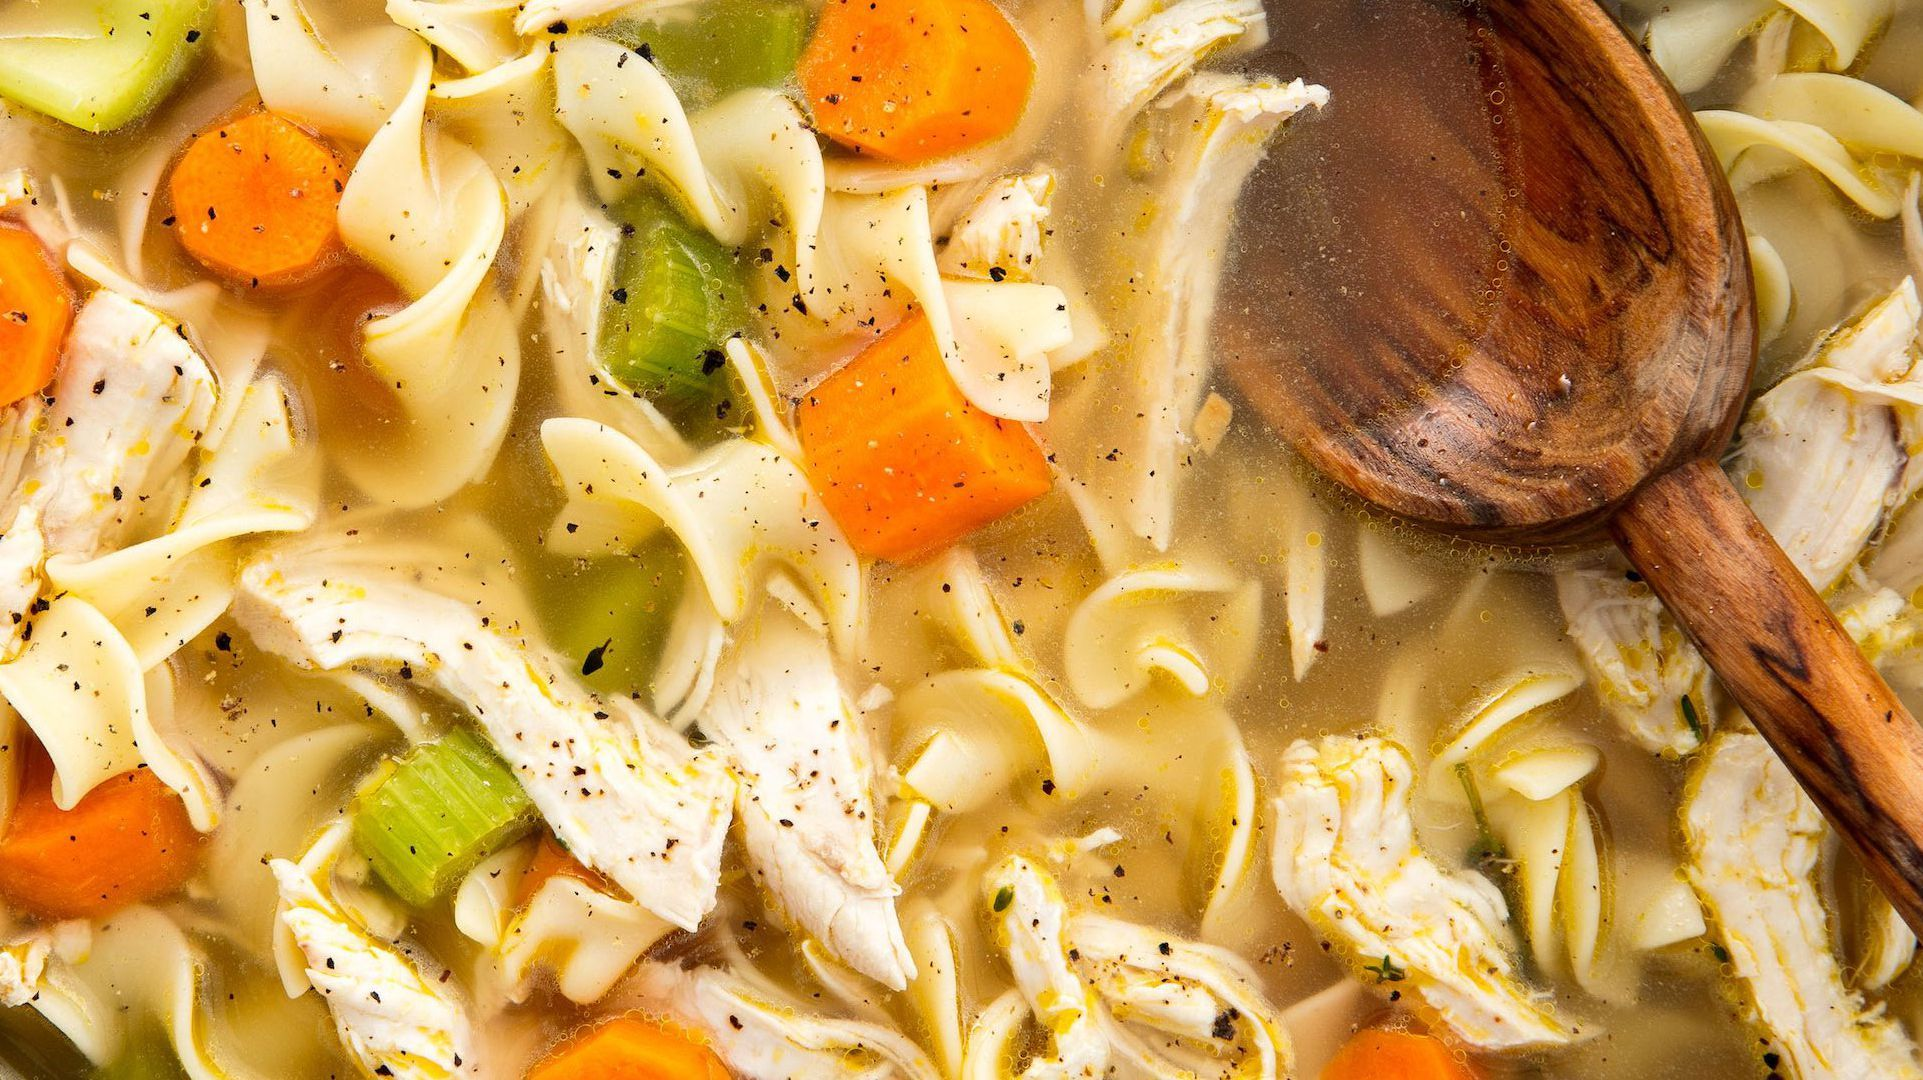 This Chicken Noodle Soup Is The Cure For That Pesky Cold